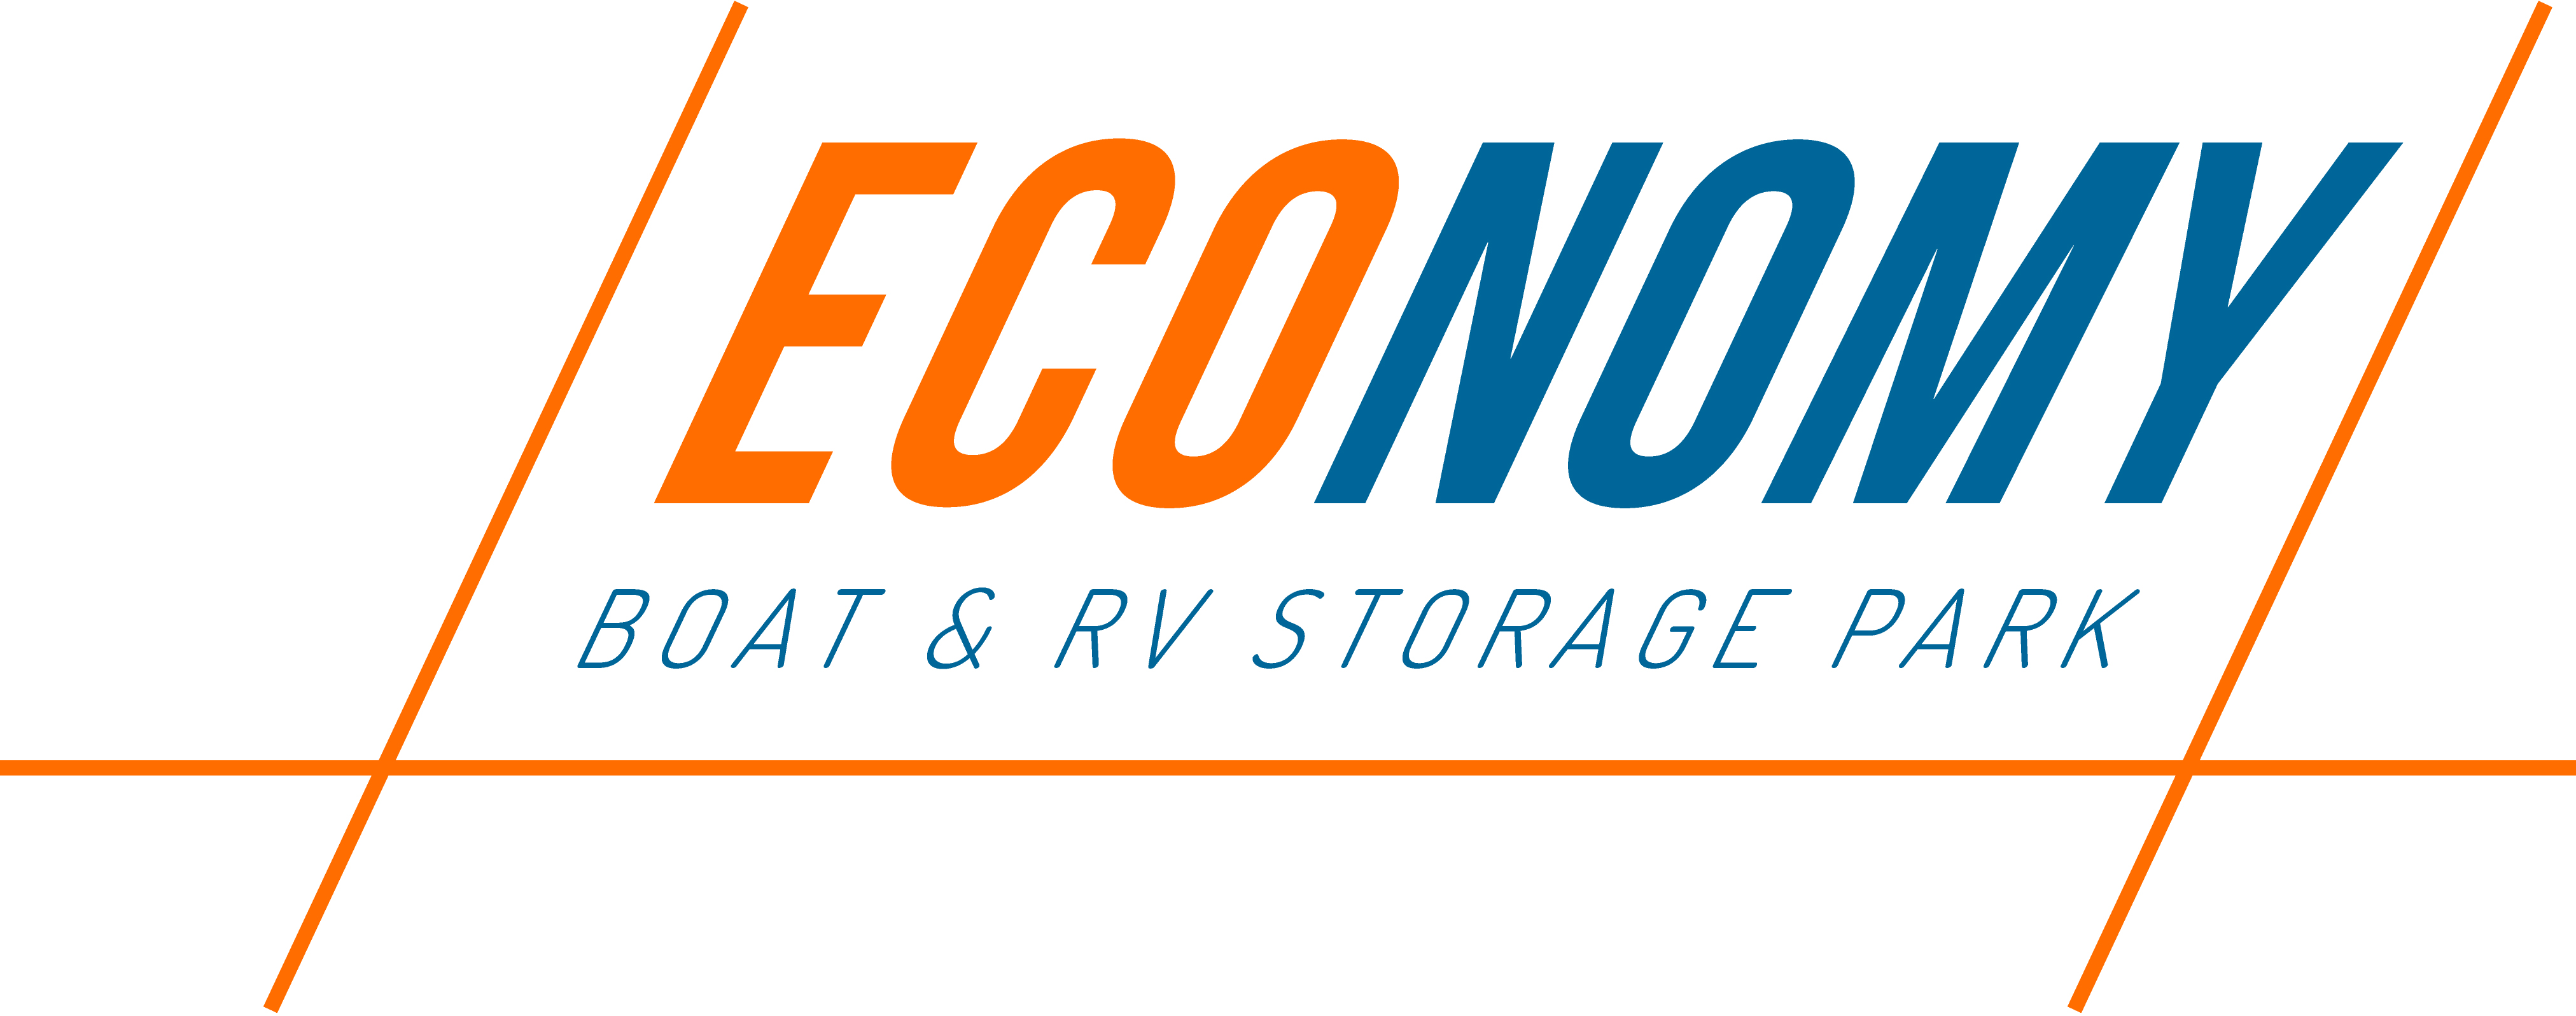 MIDCON Property Management dba Economy Boat & RV Storage Park